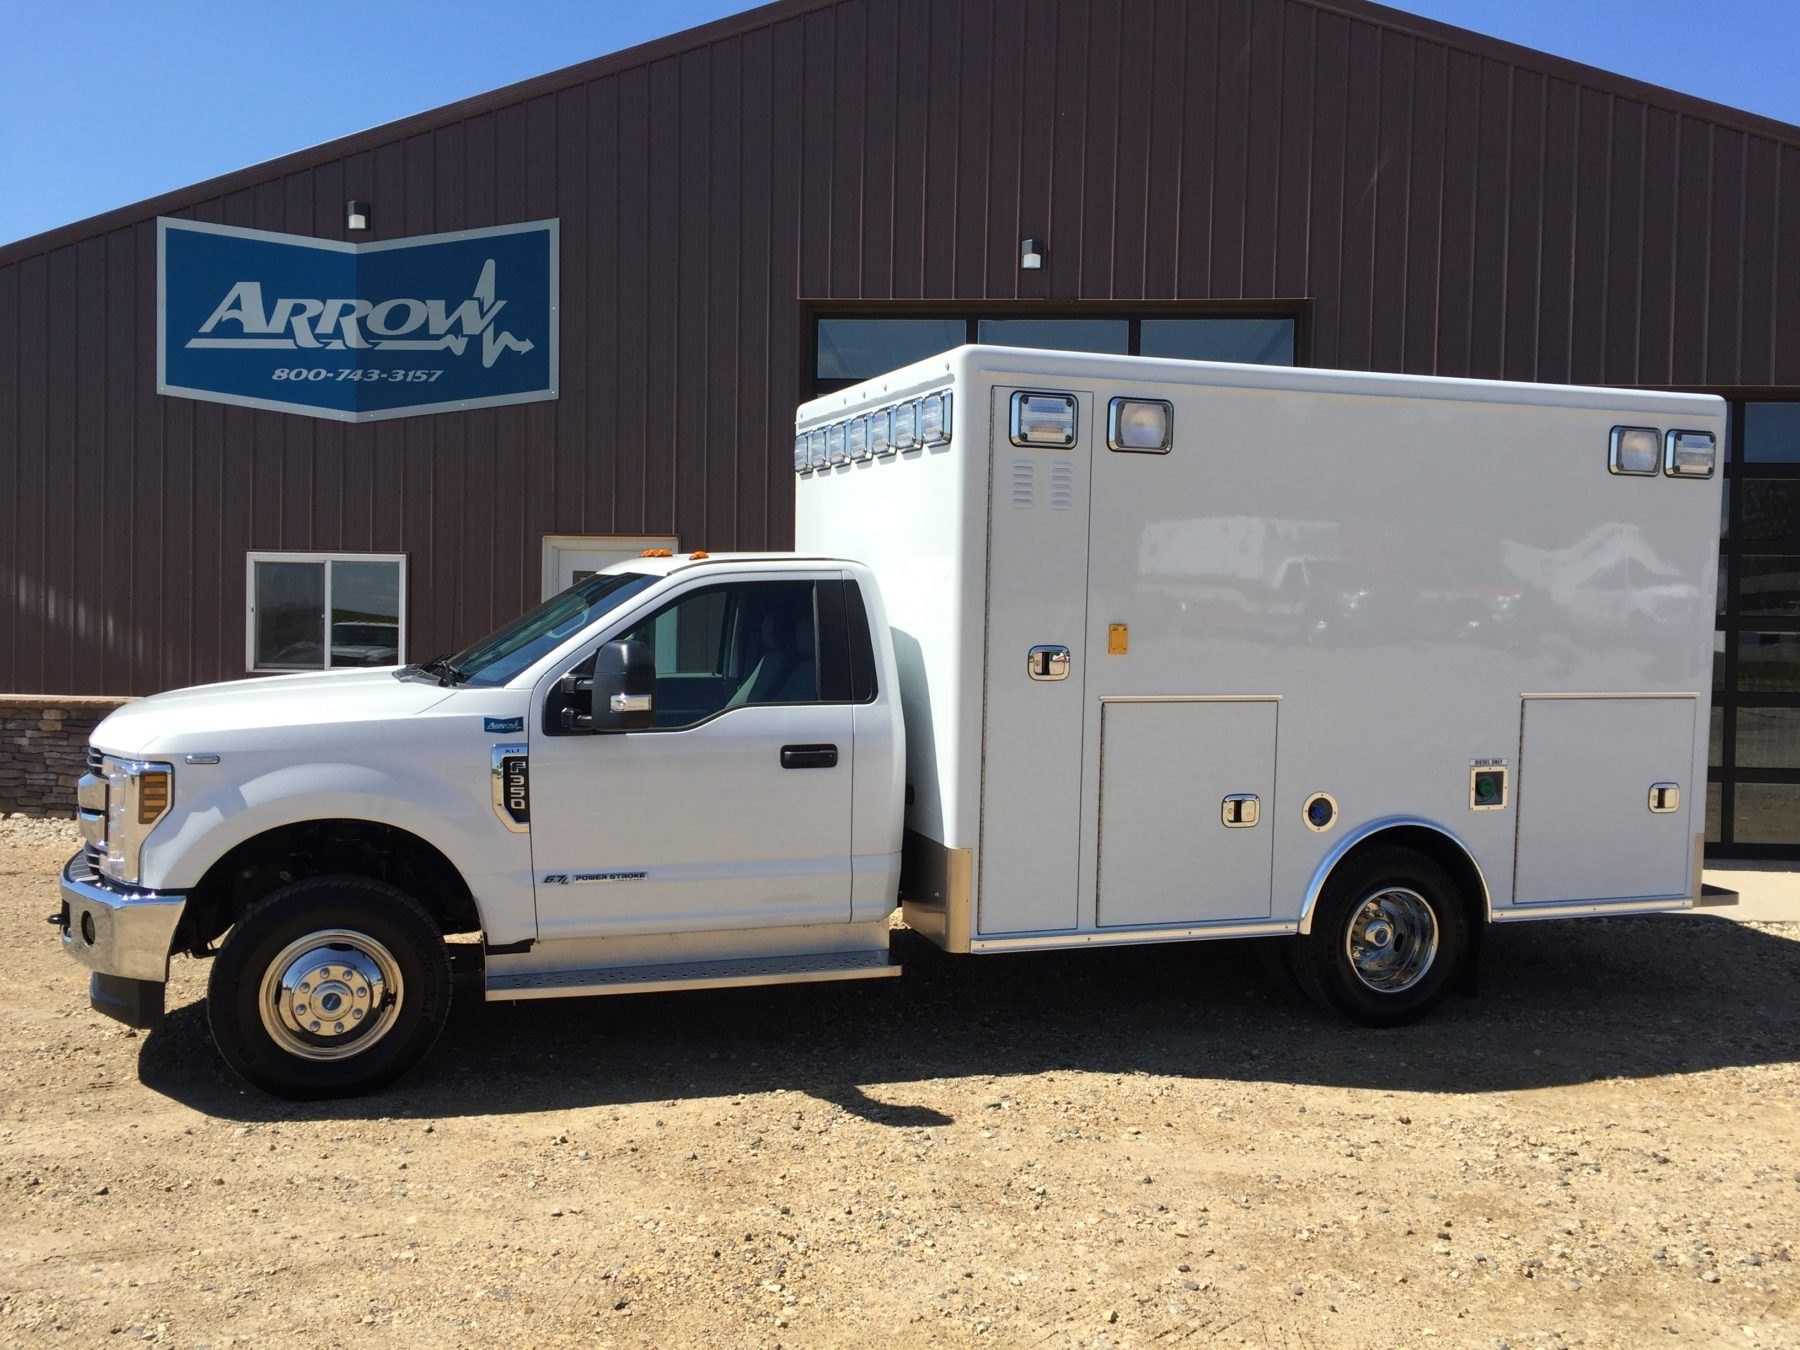 2018 Ford F350 4x4 Type 1 Ambulance For Sale – Picture 1